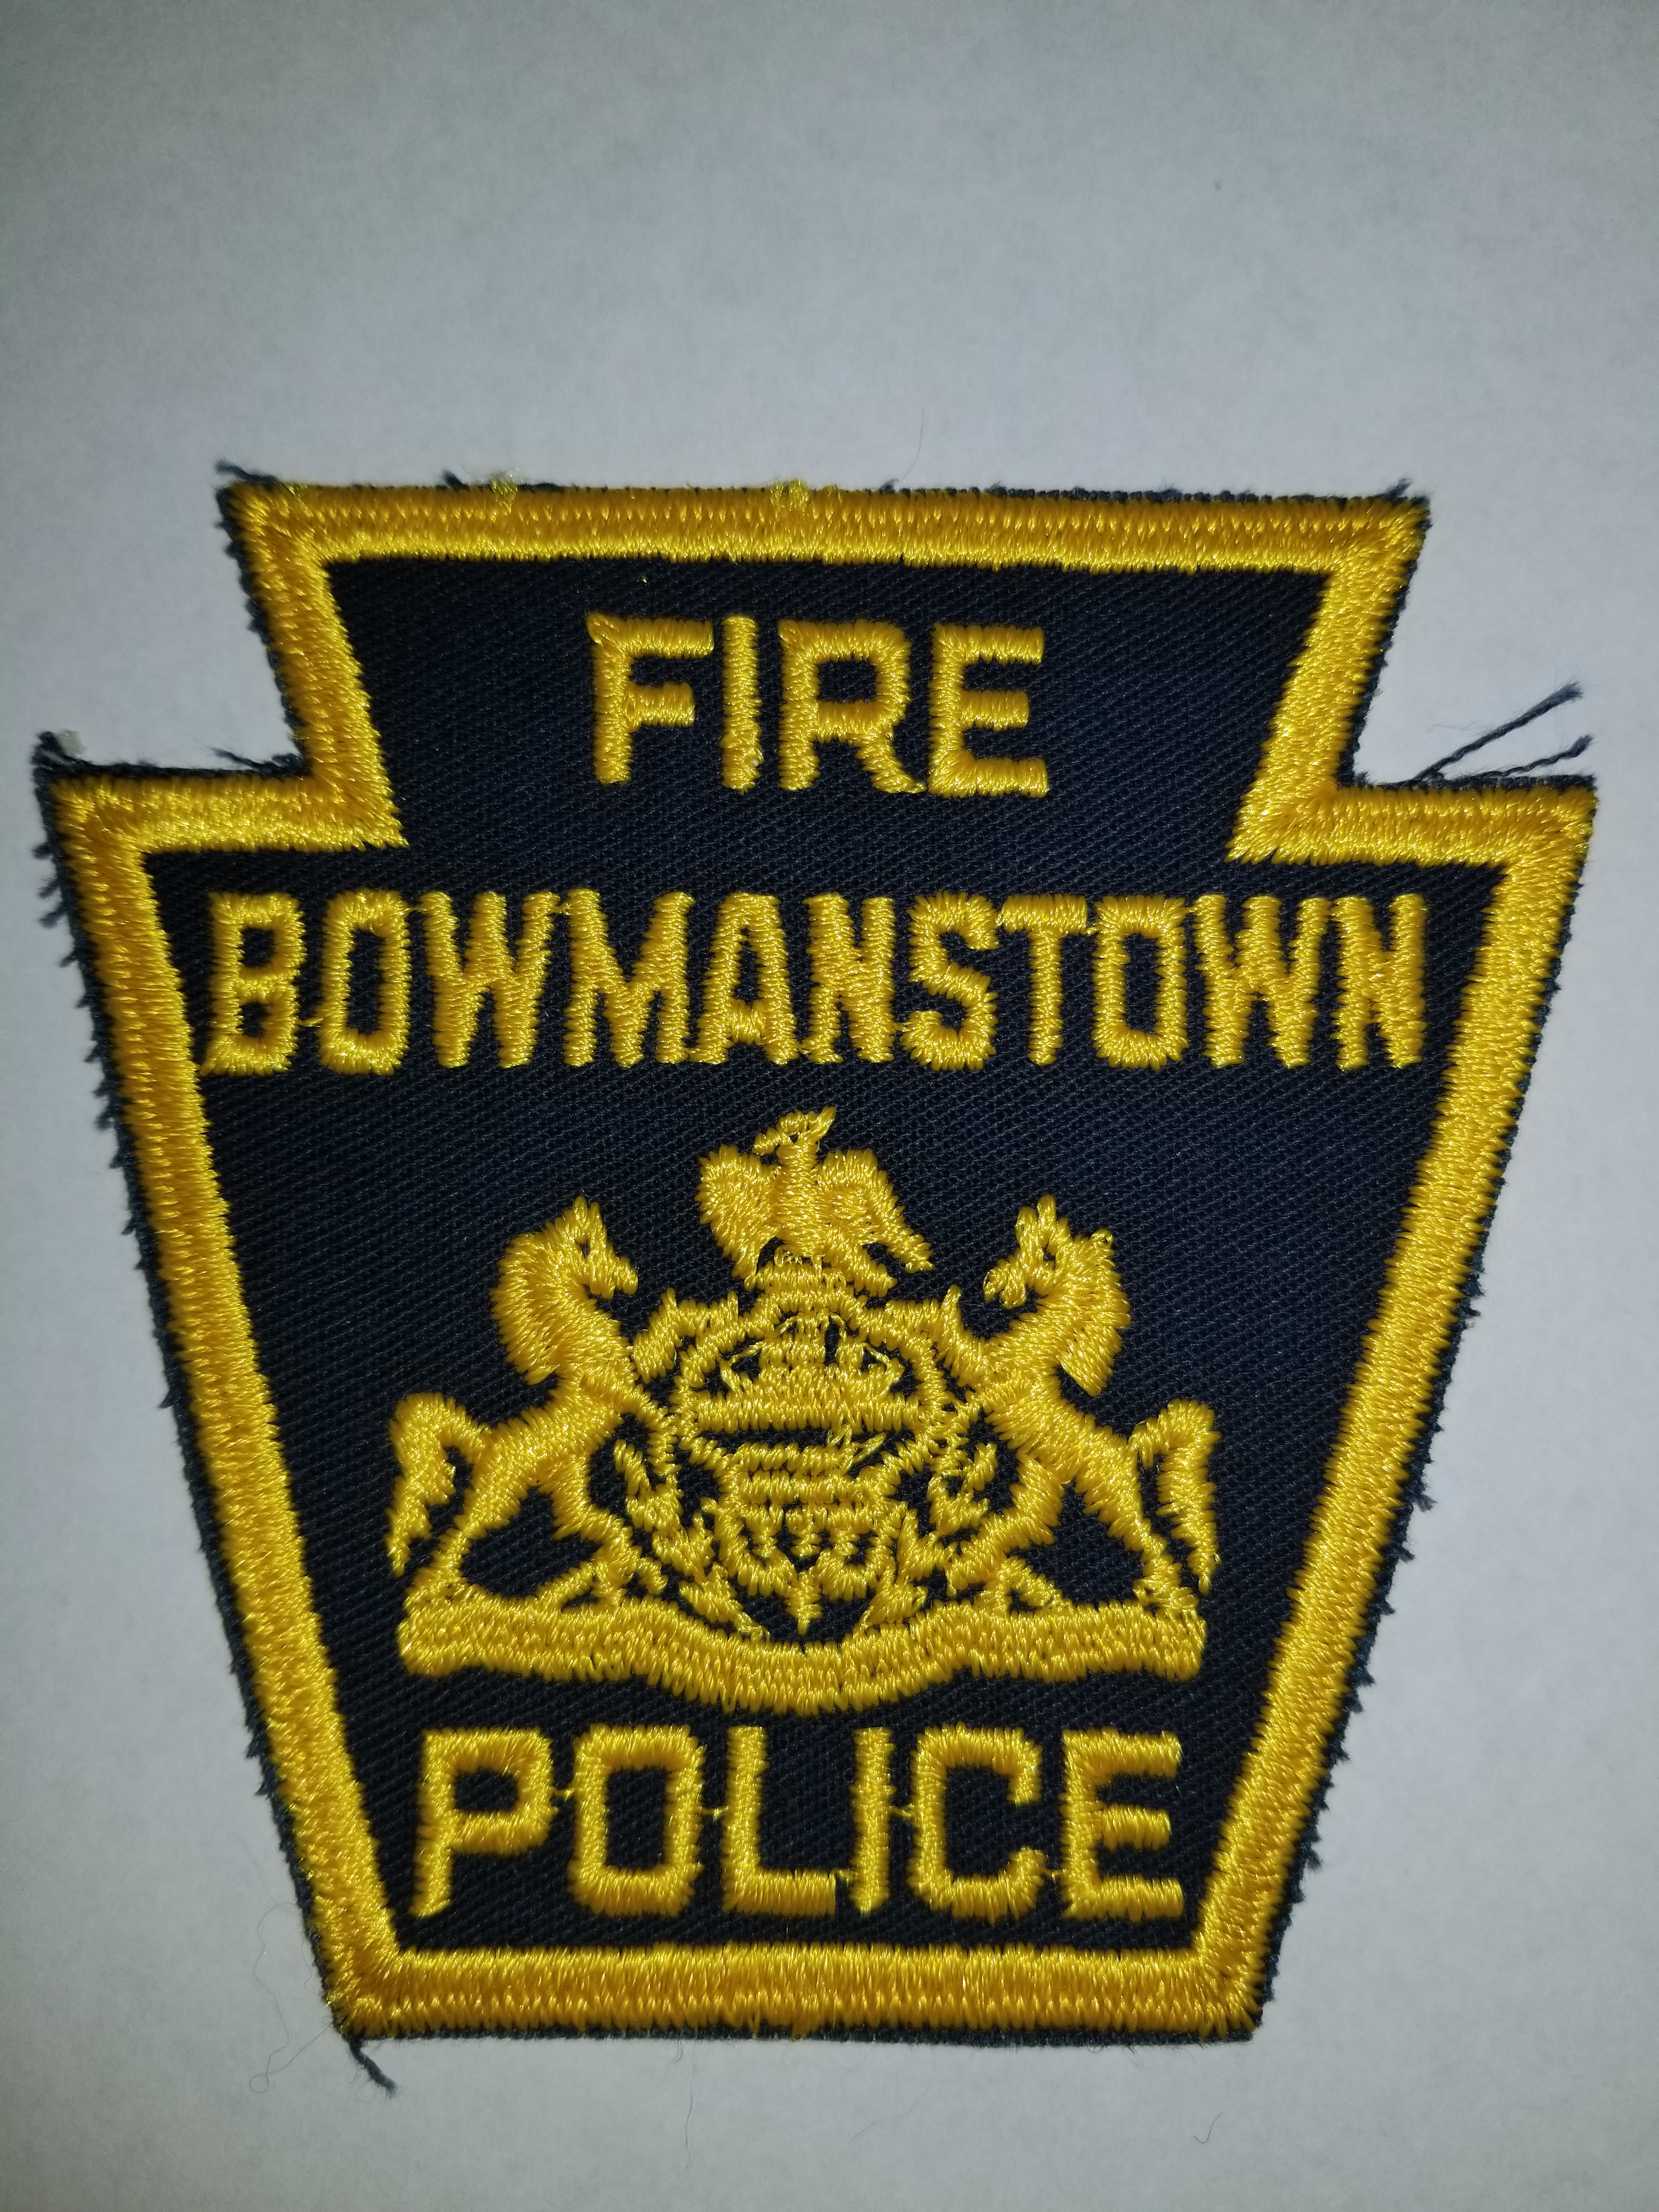 Bowmanstown PA Fire Police